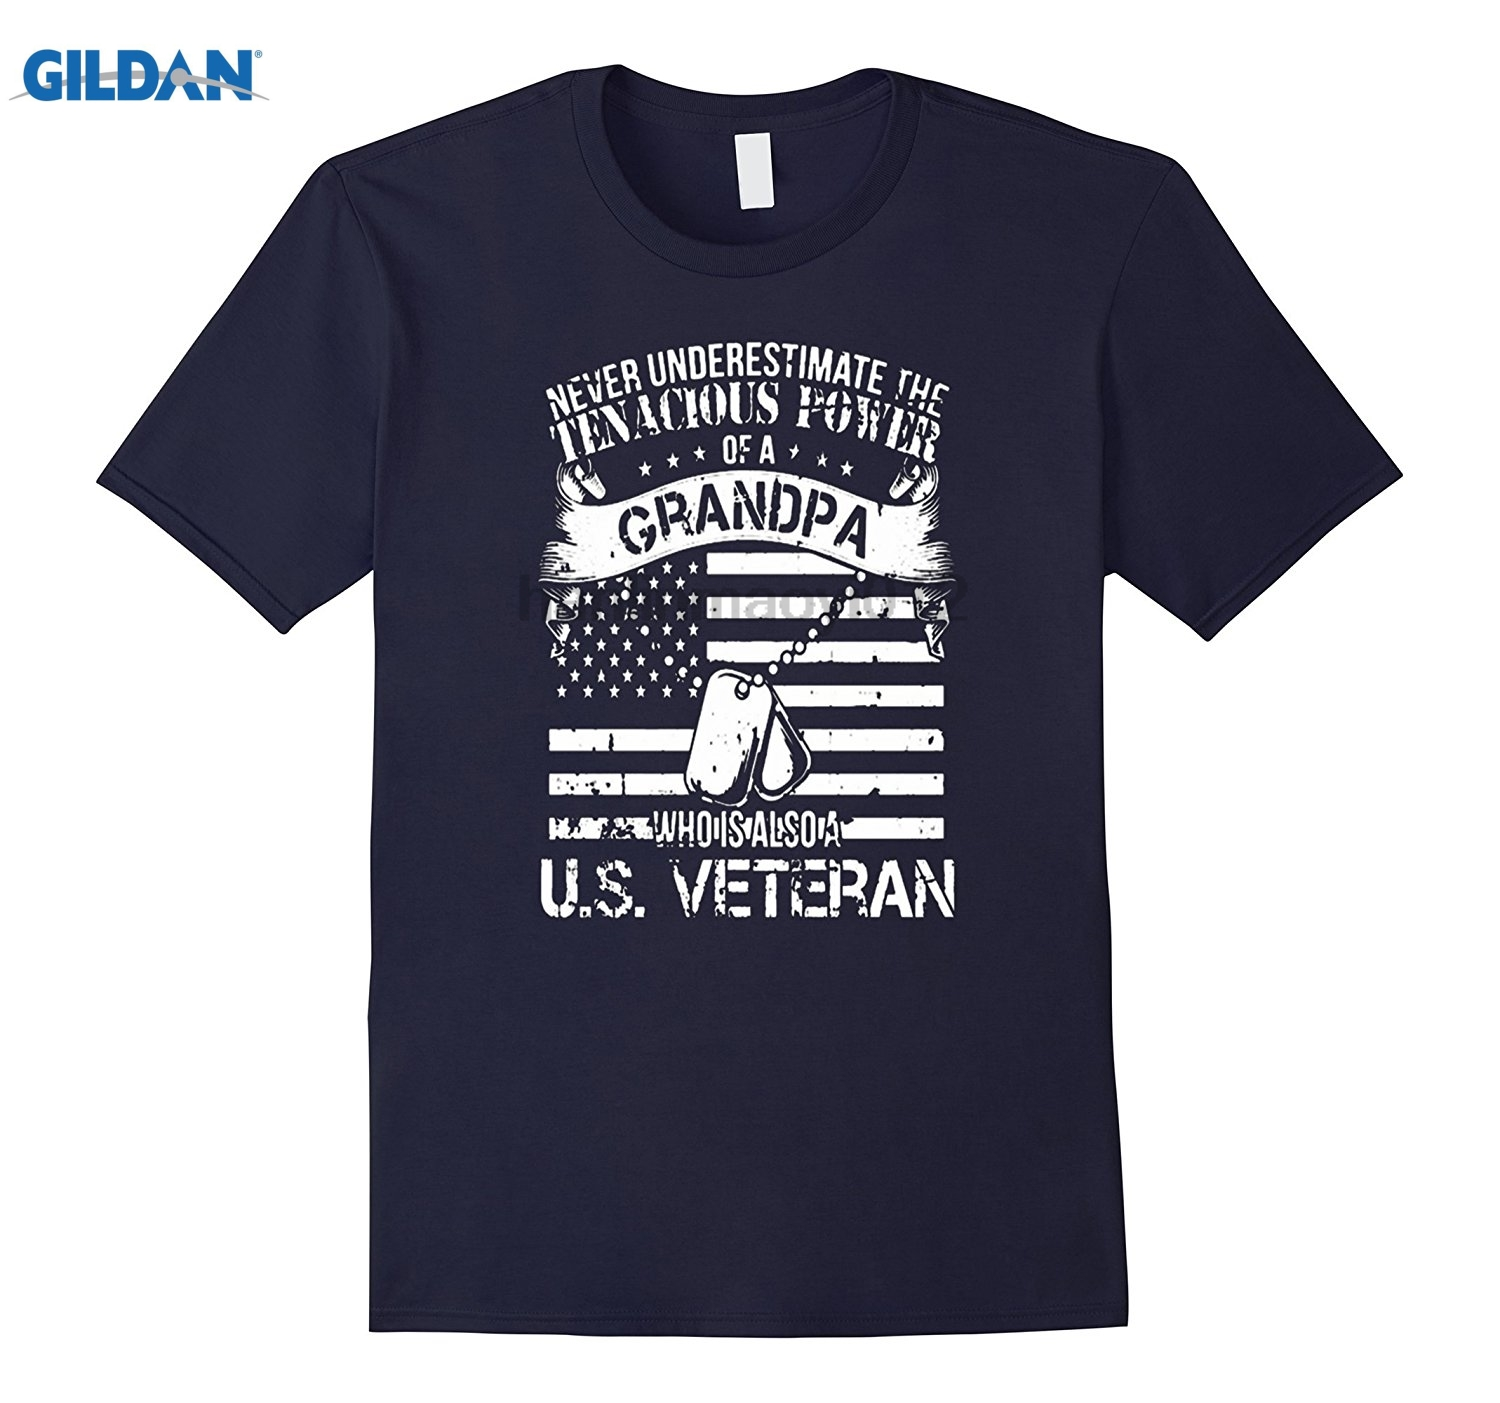 GILDAN Memorial Day Shirt- Tenacious Power Grandpa U.S veteran day Mothers Day Ms. T-shi ...